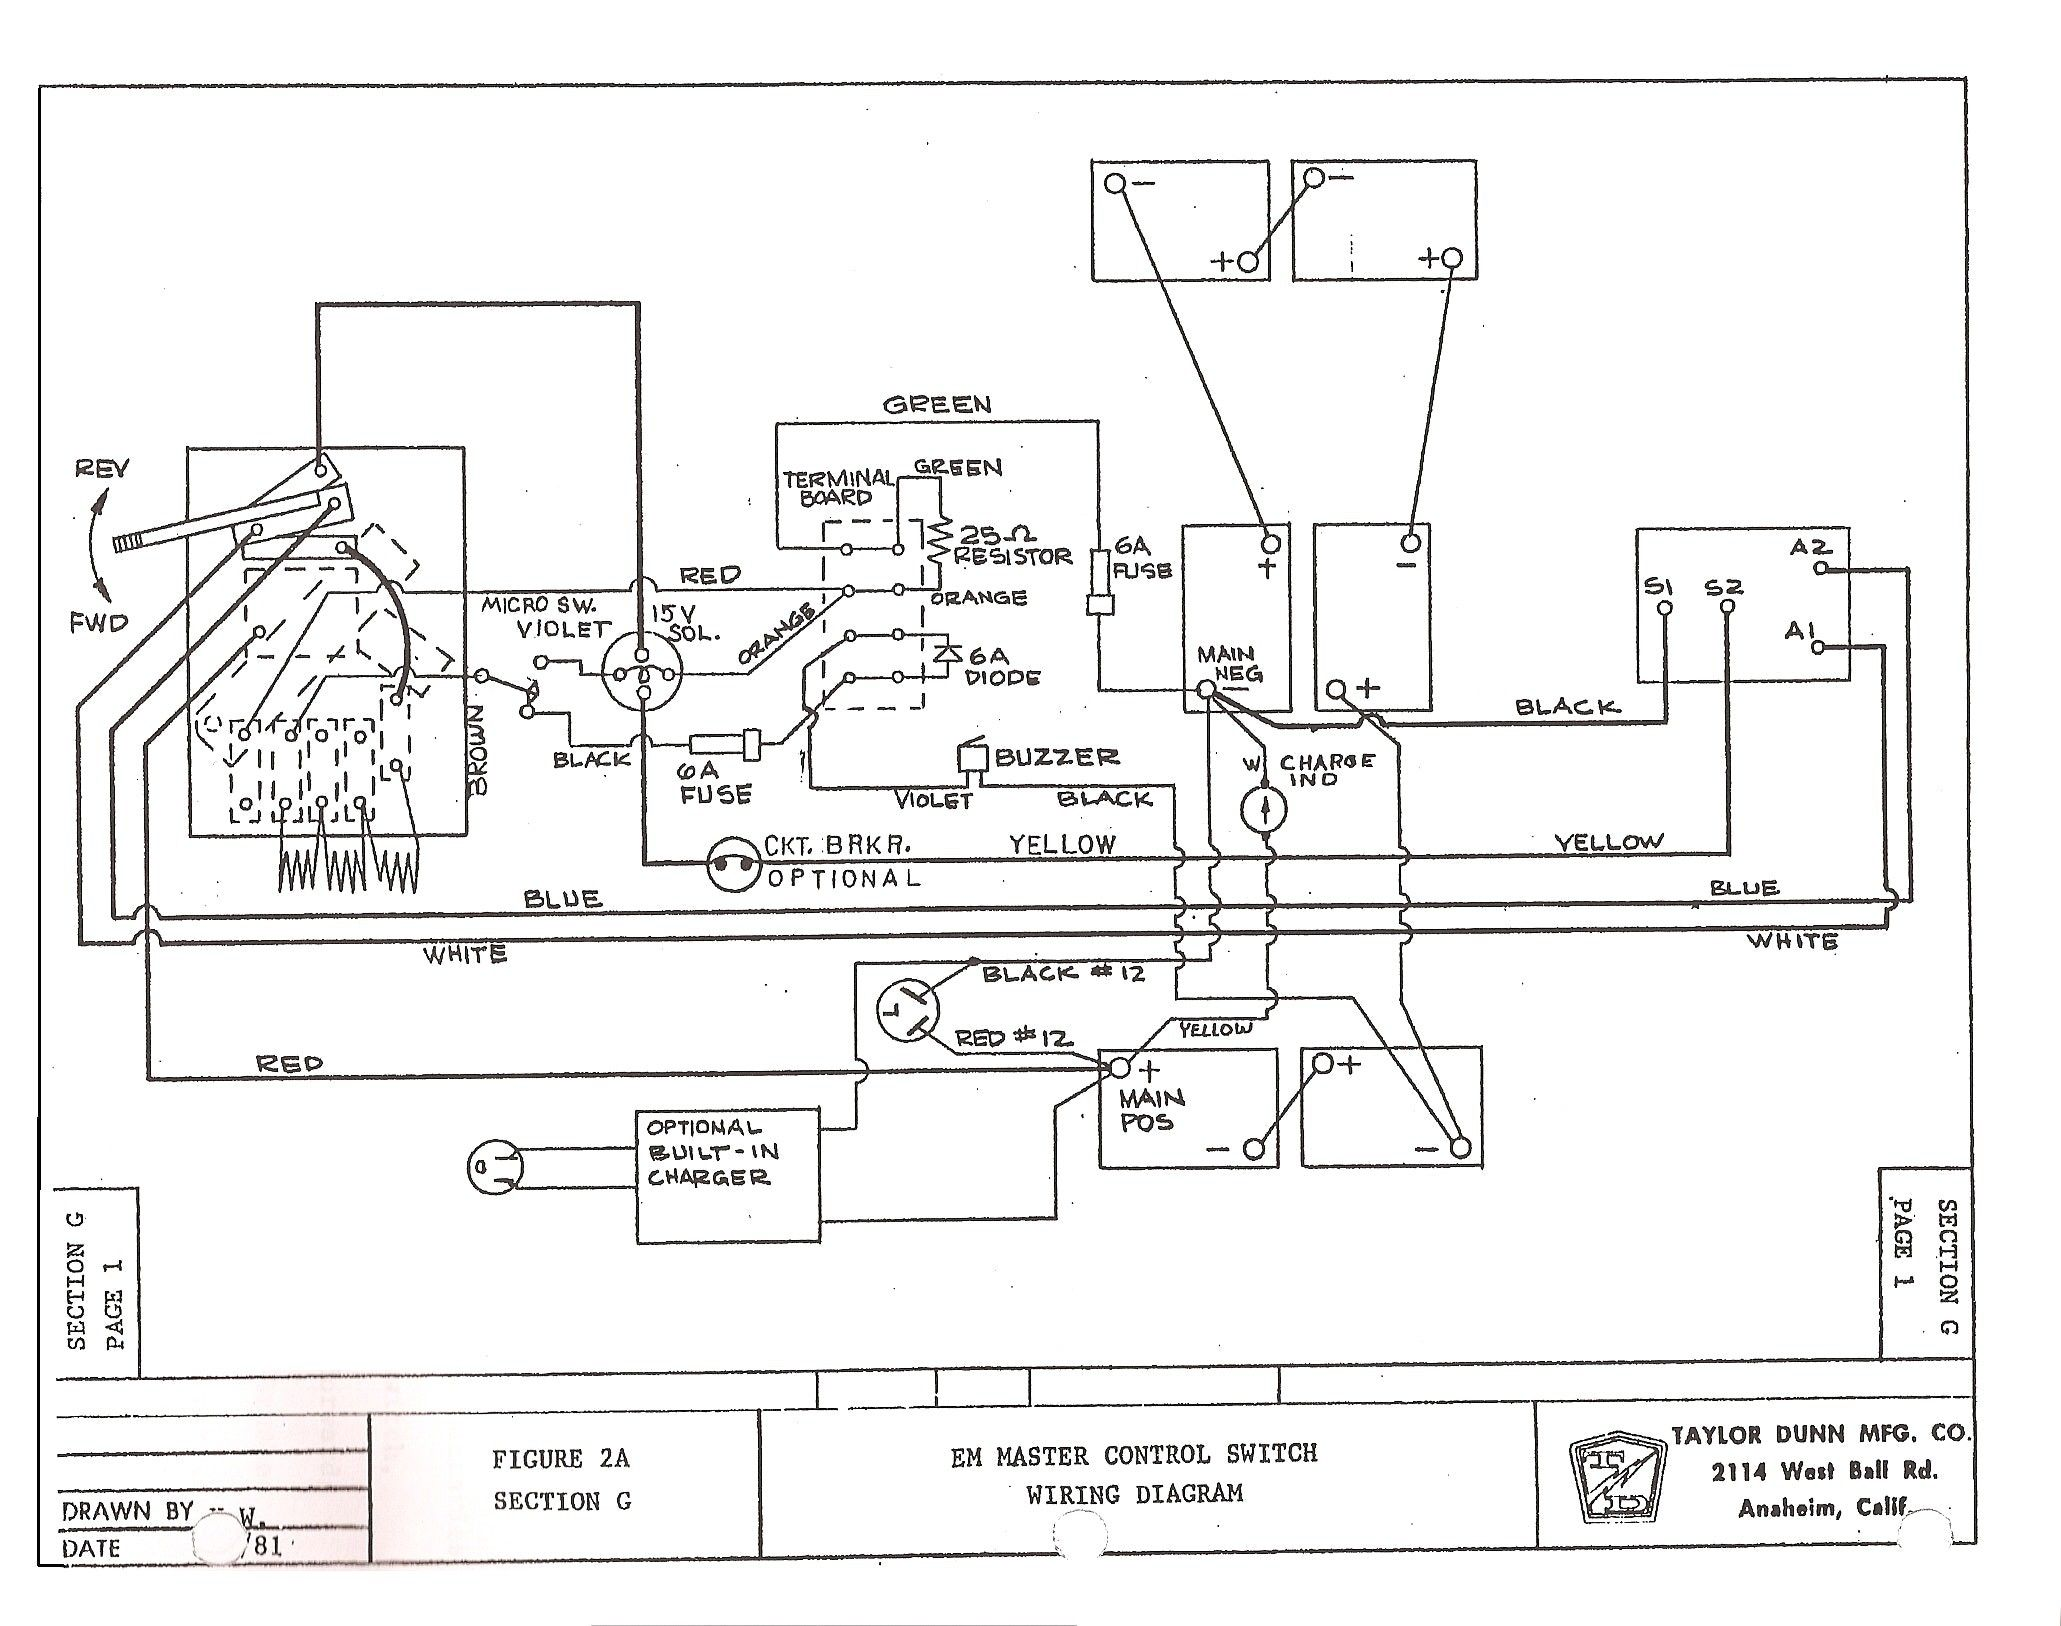 wiring diagram for yamaha g22 golf cart